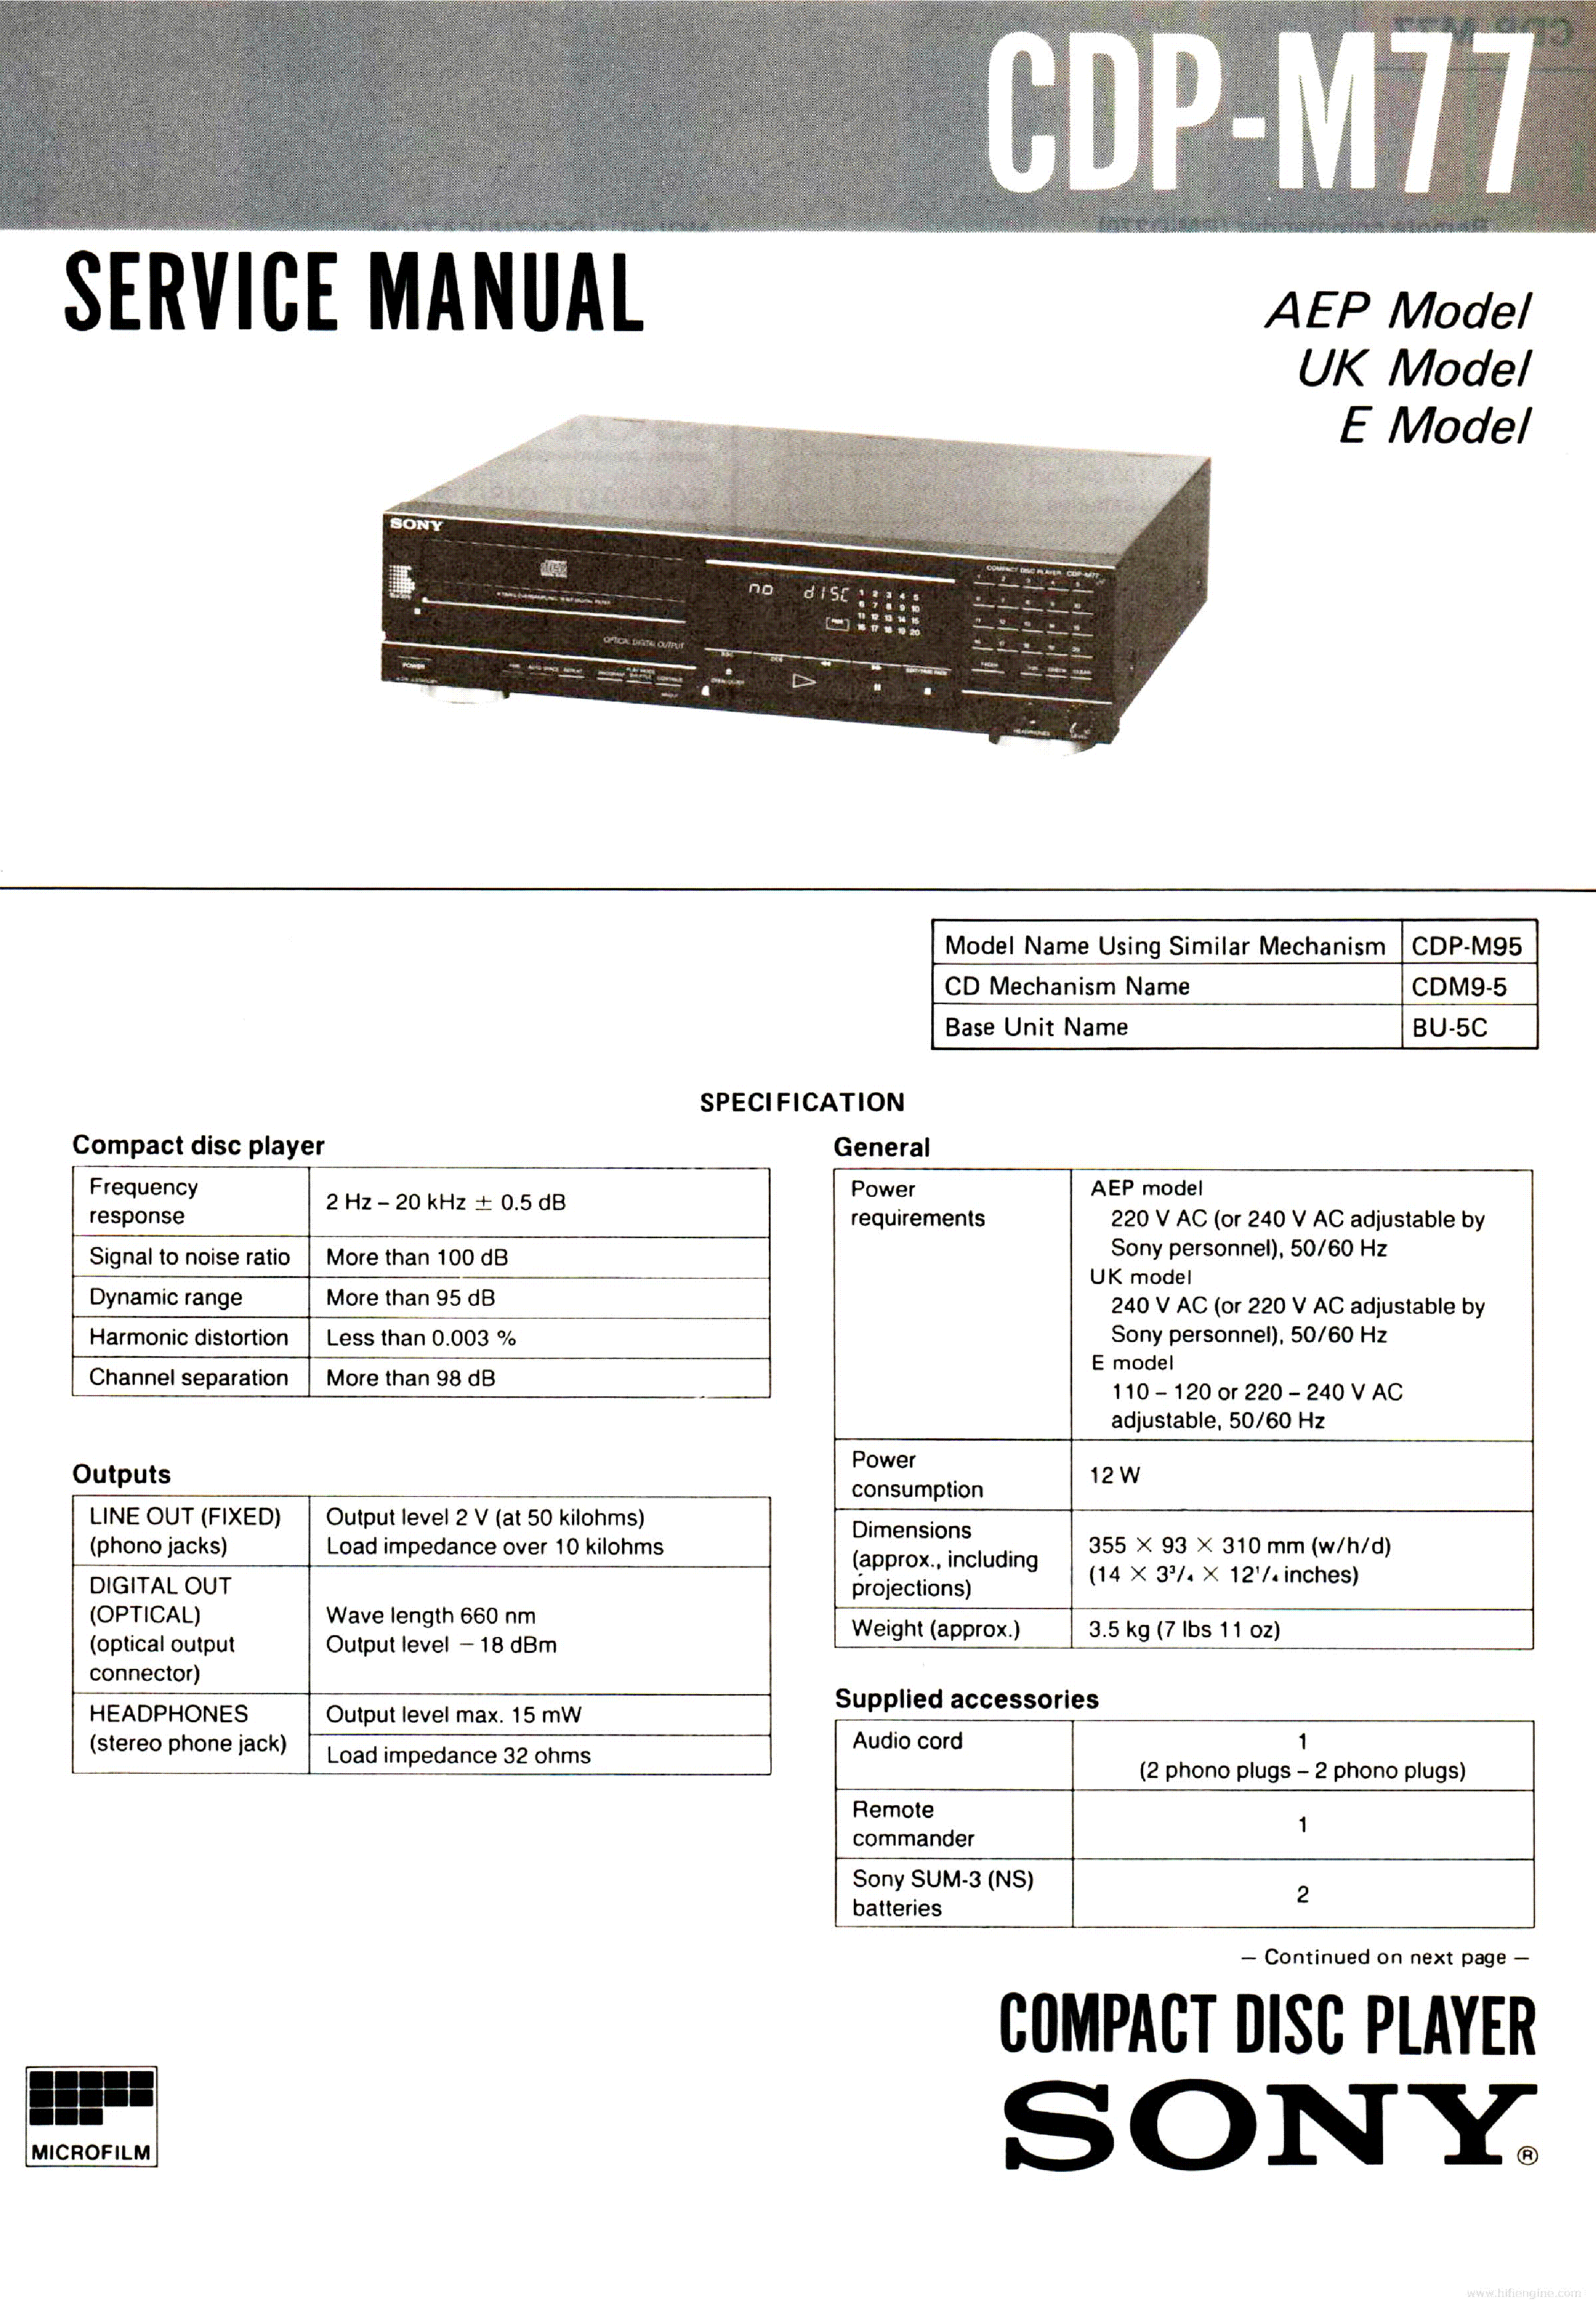 SONY CDP-M77 SM FULL service manual (1st page)